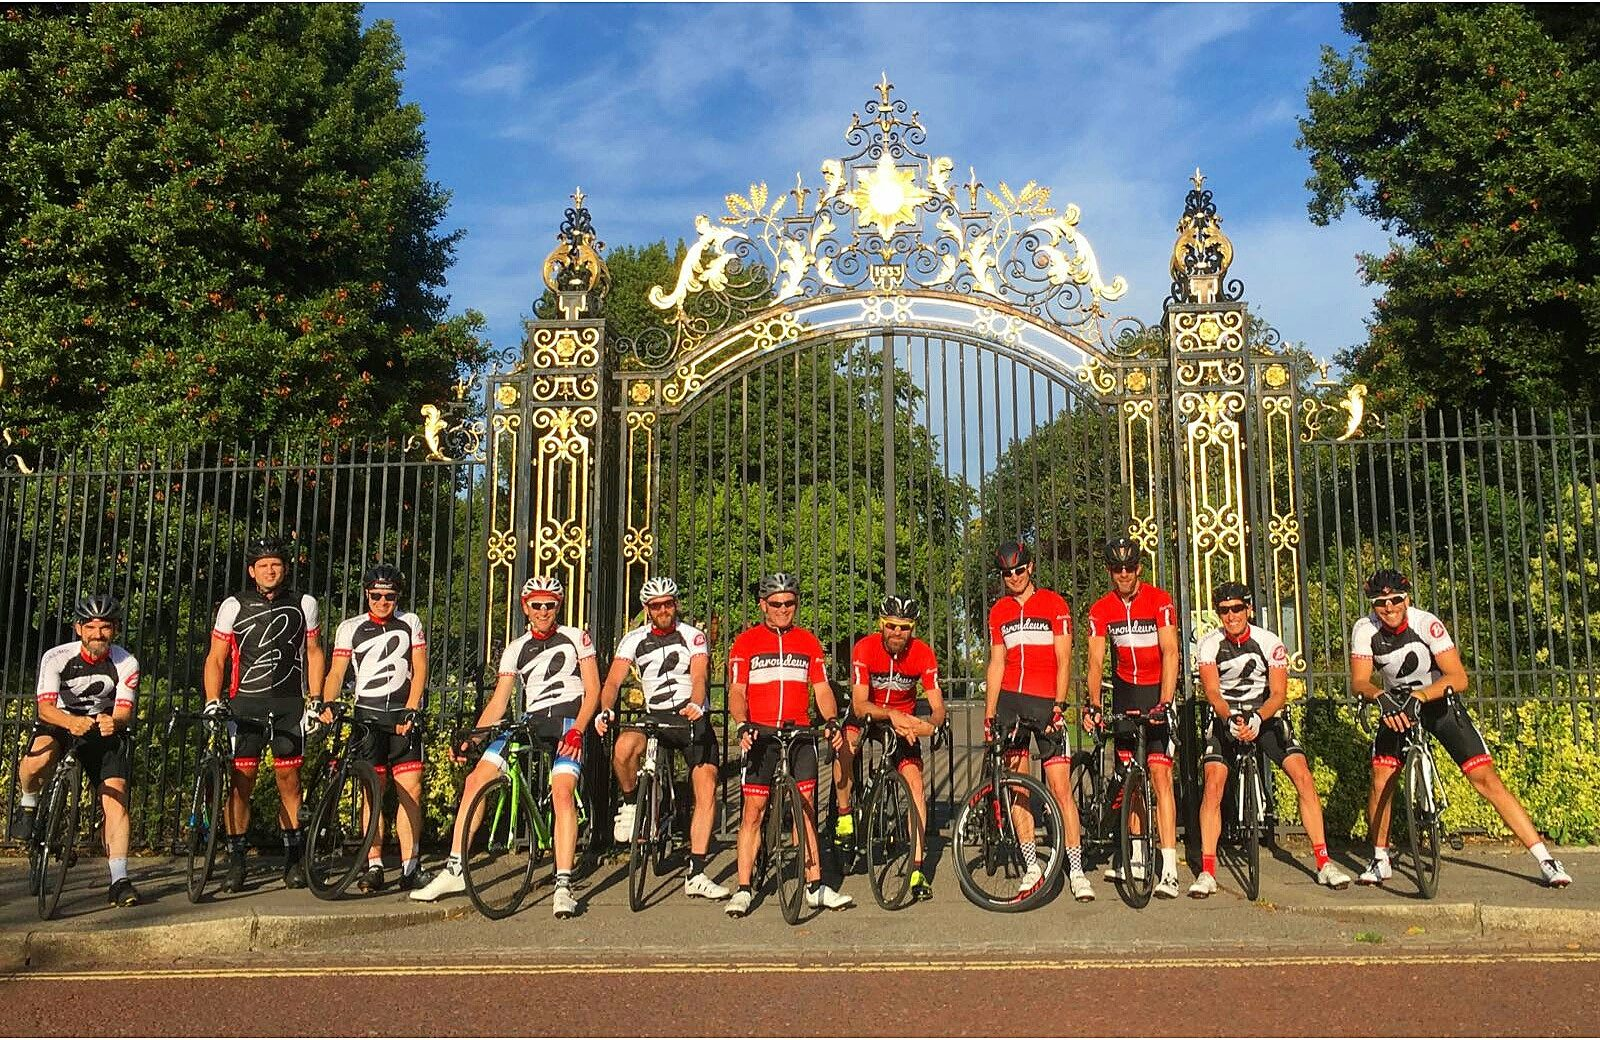 London Baroudeurs at the Gates - The Royal Parks